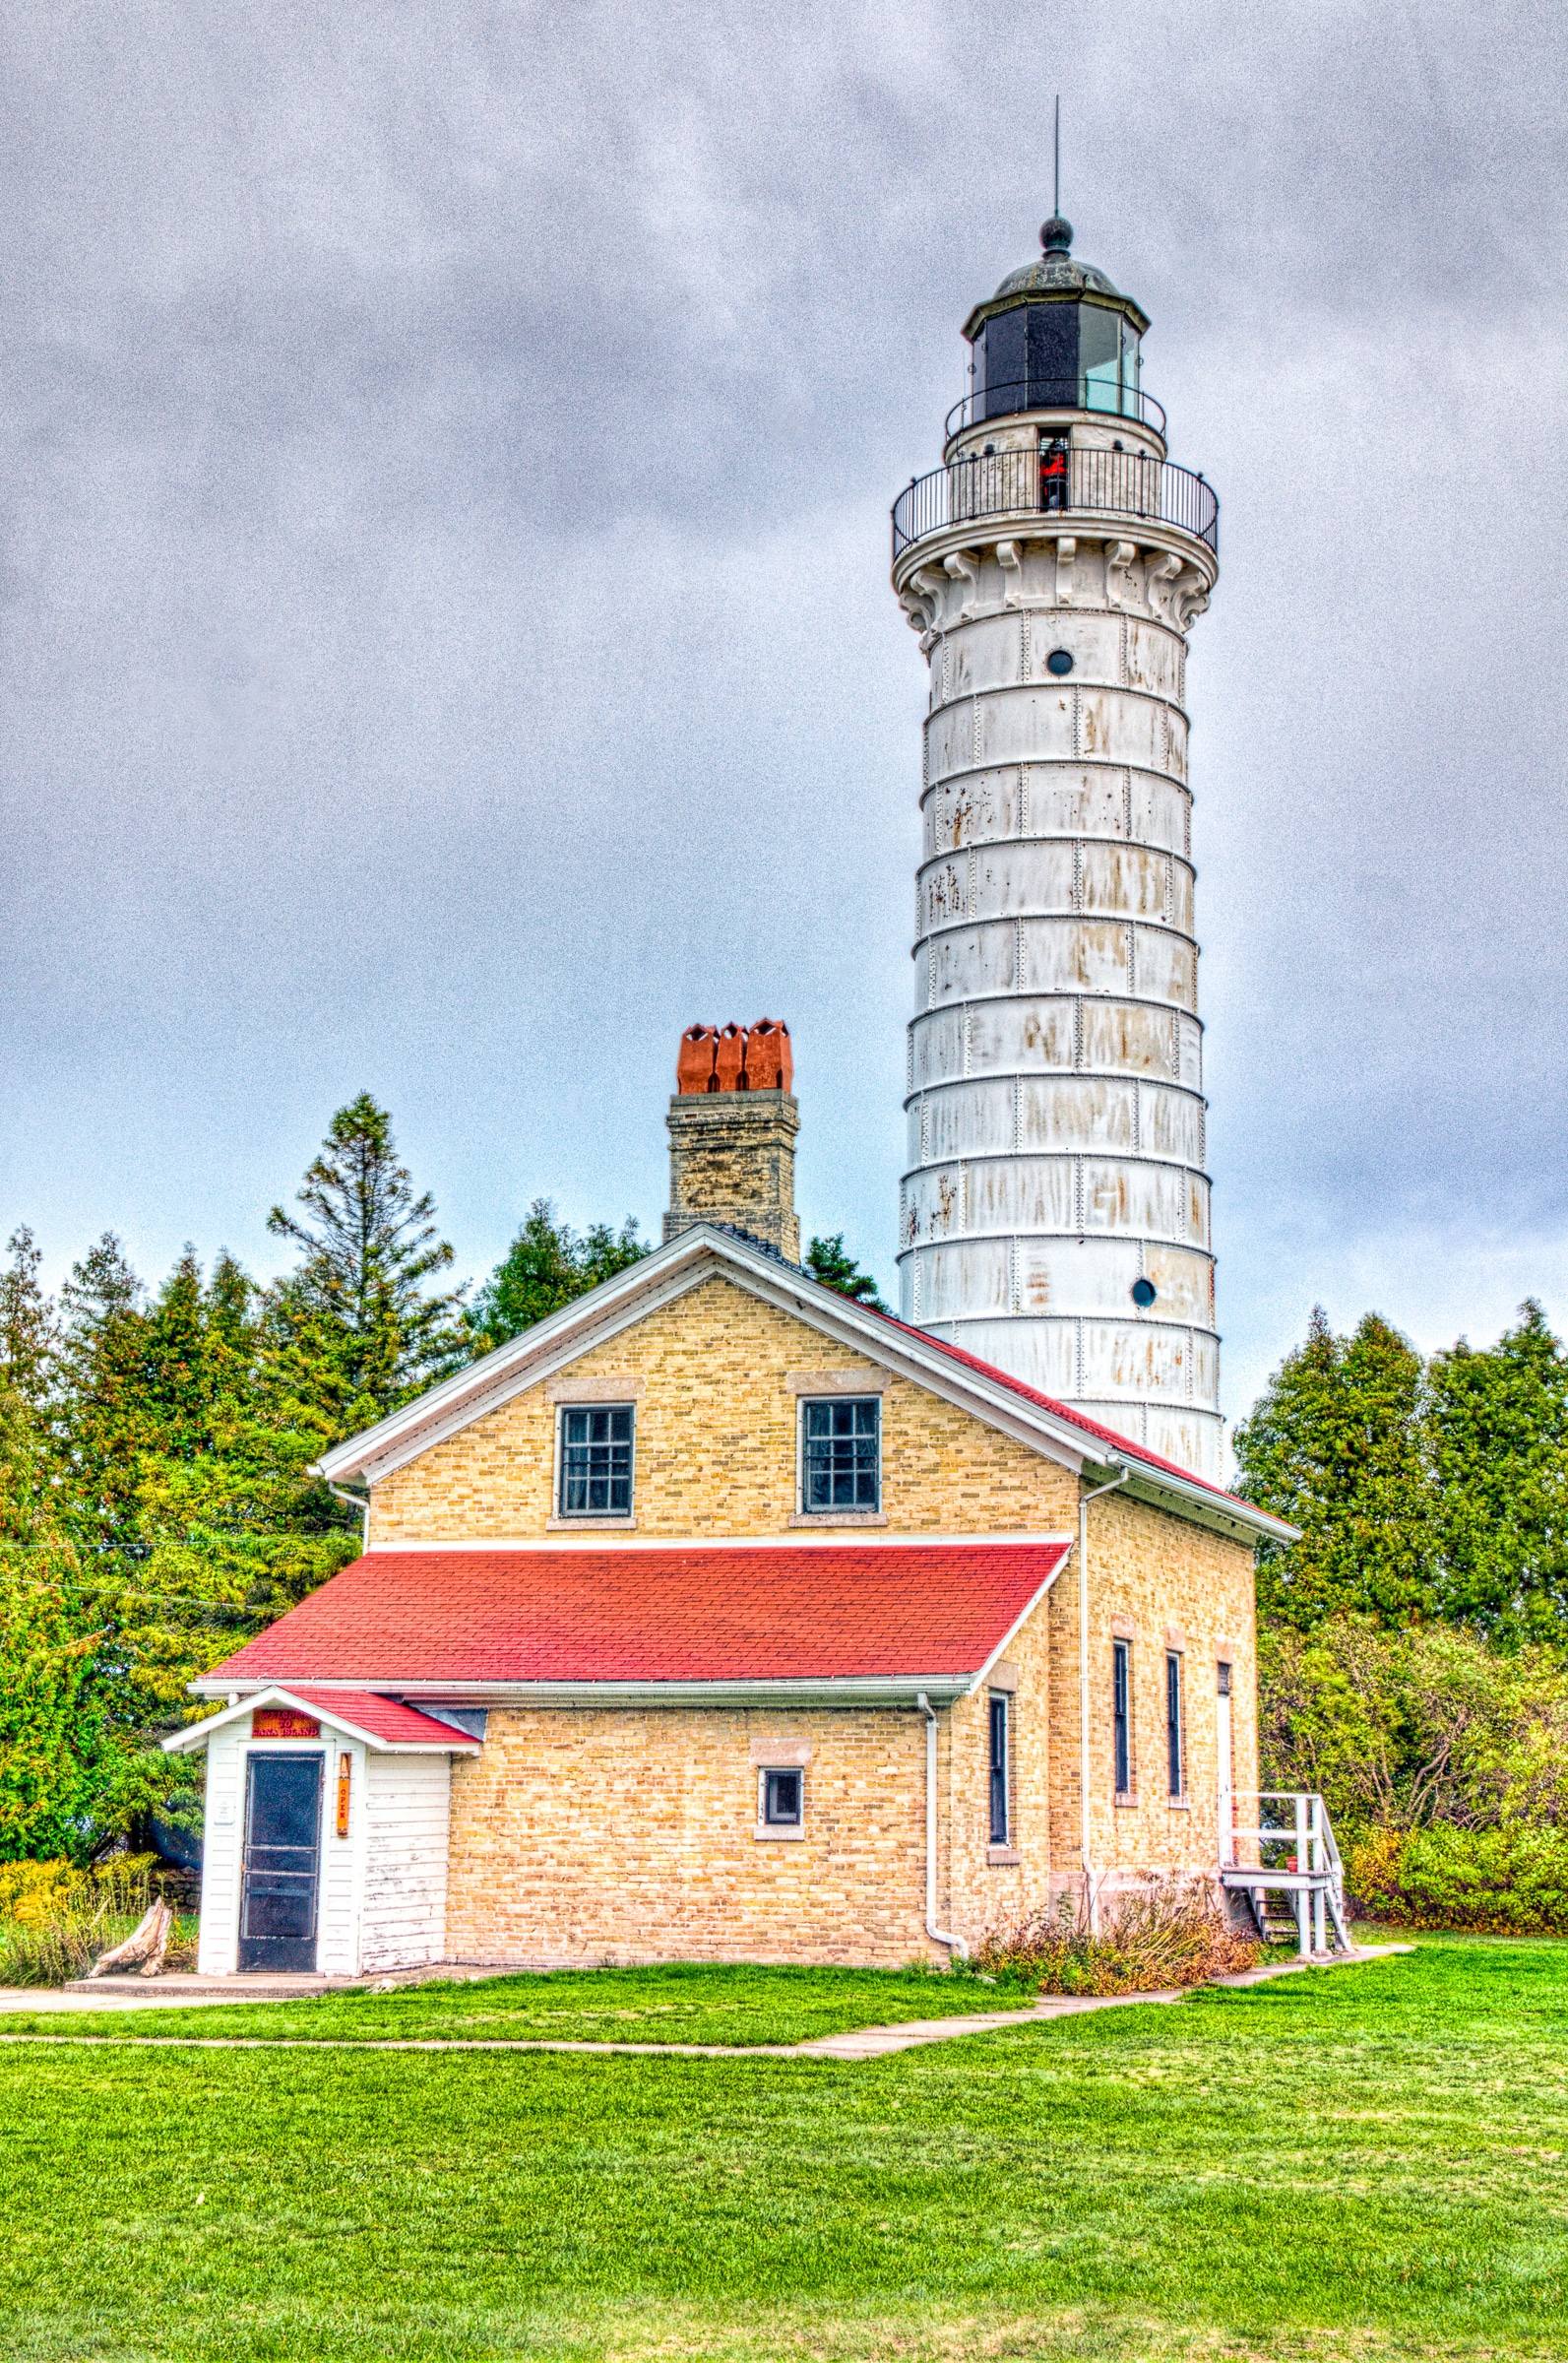 Overview of the Cana Island Lighthouse, north of Baileys Harbor, Wisconsin, on Lake Michigan.